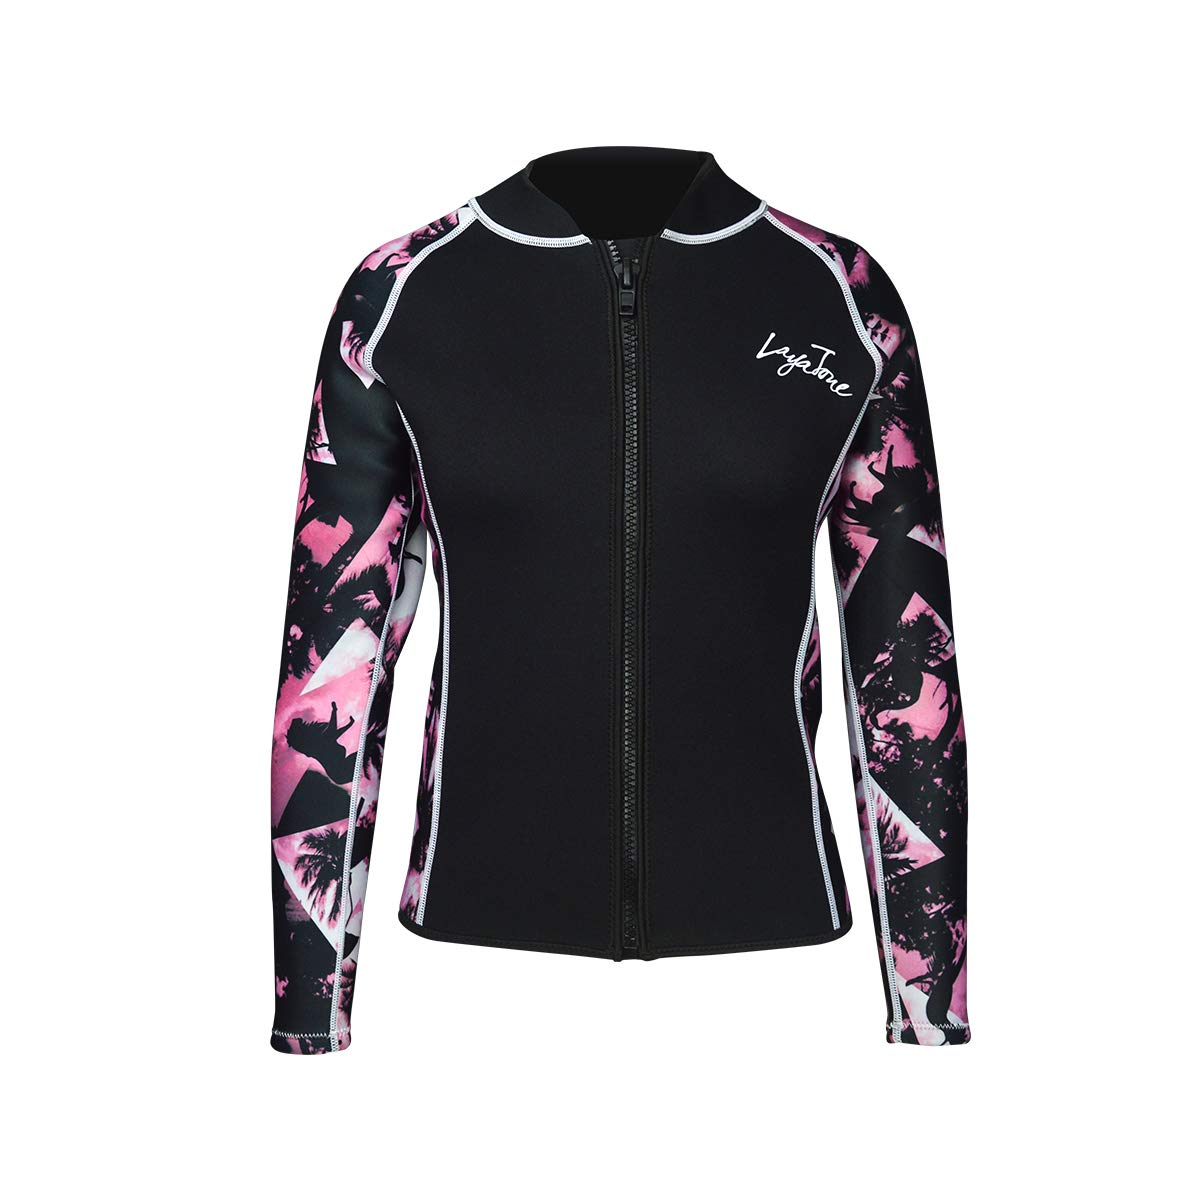 Layatone Wetsuits Top Women Men 3mm Neoprene Jacket Tops Diving Surfing Suit Rash Guard Long Sleeevs Front YKK Zipper Wet Suits Jacket Top Adults (Pink-Lycra Sleeve,S) by Layatone